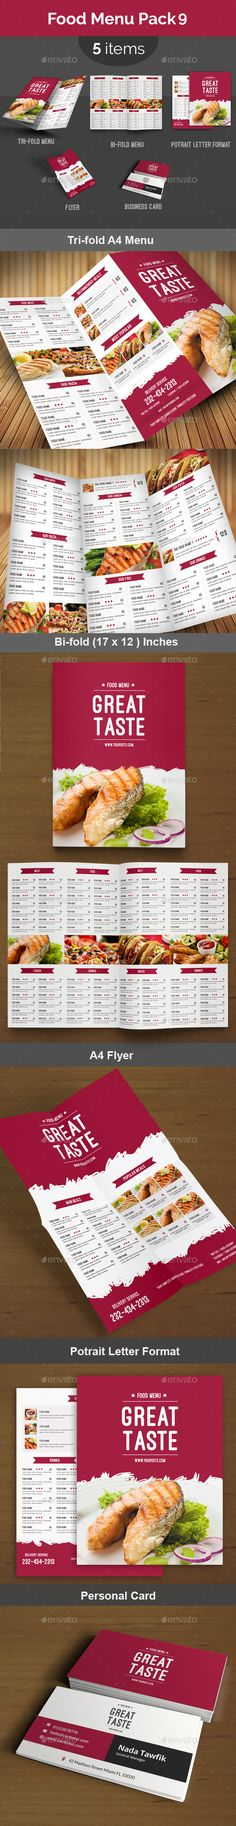 Food Menu Pack 9 — Photoshop PSD #print template #restaurant menu • Available here → https://graphicriver.net/item/food-menu-pack-9/13855845?ref=pxcr